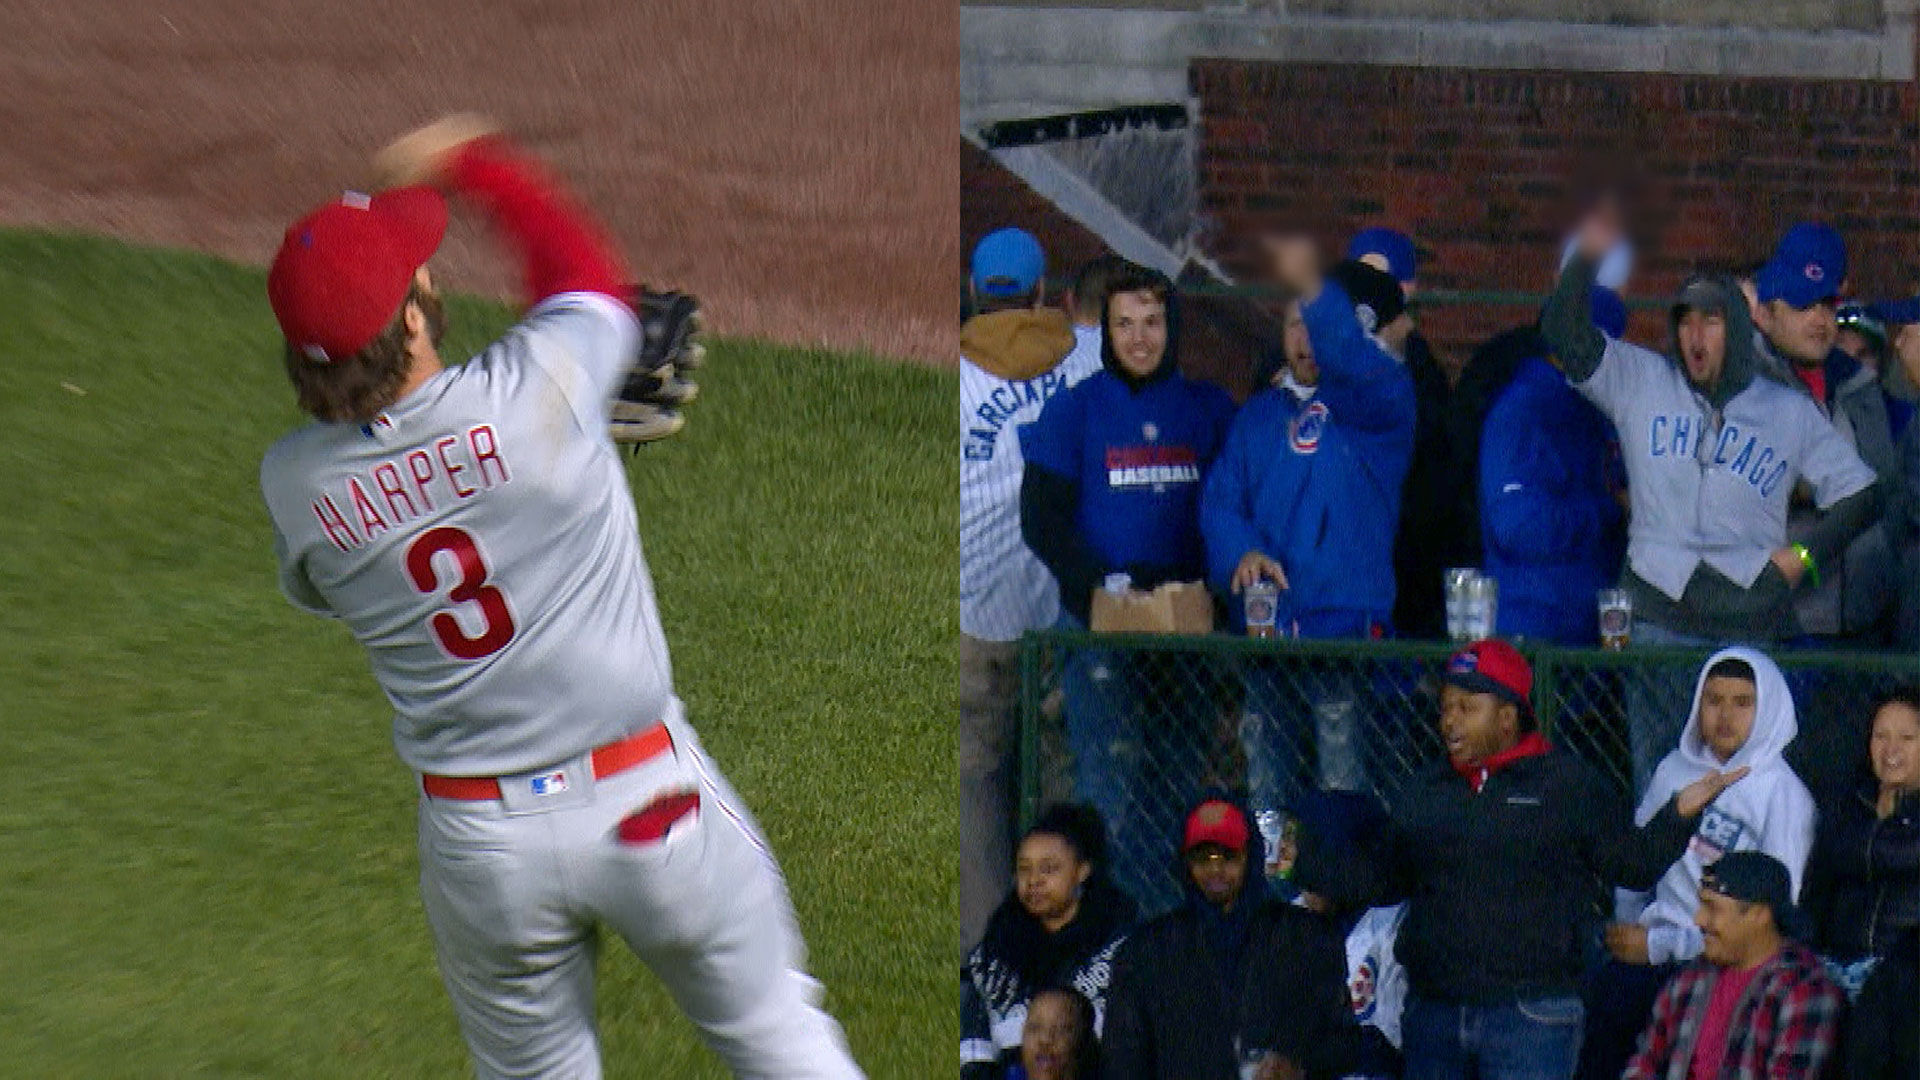 Bryce Harper trolls Cubs fans by throwing ball out of the park